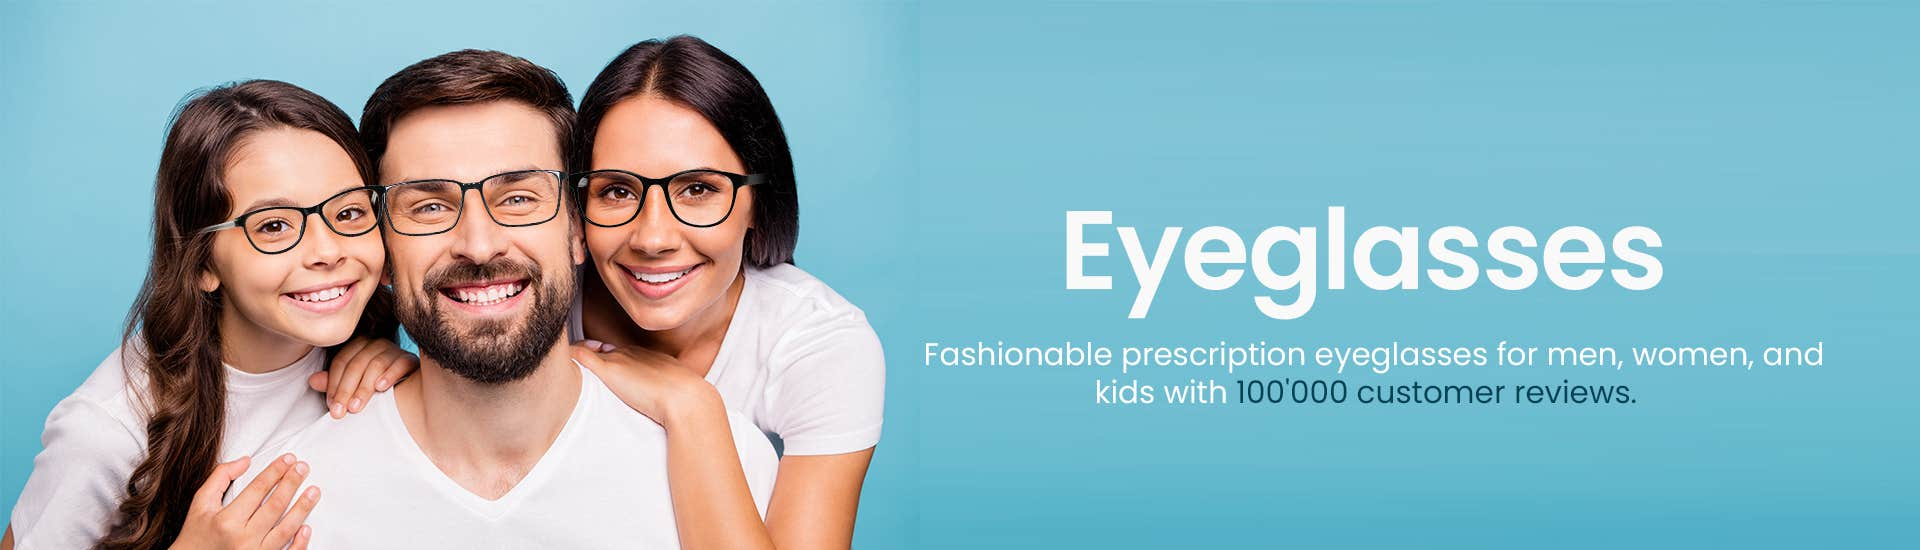 Prescription Eyeglasses